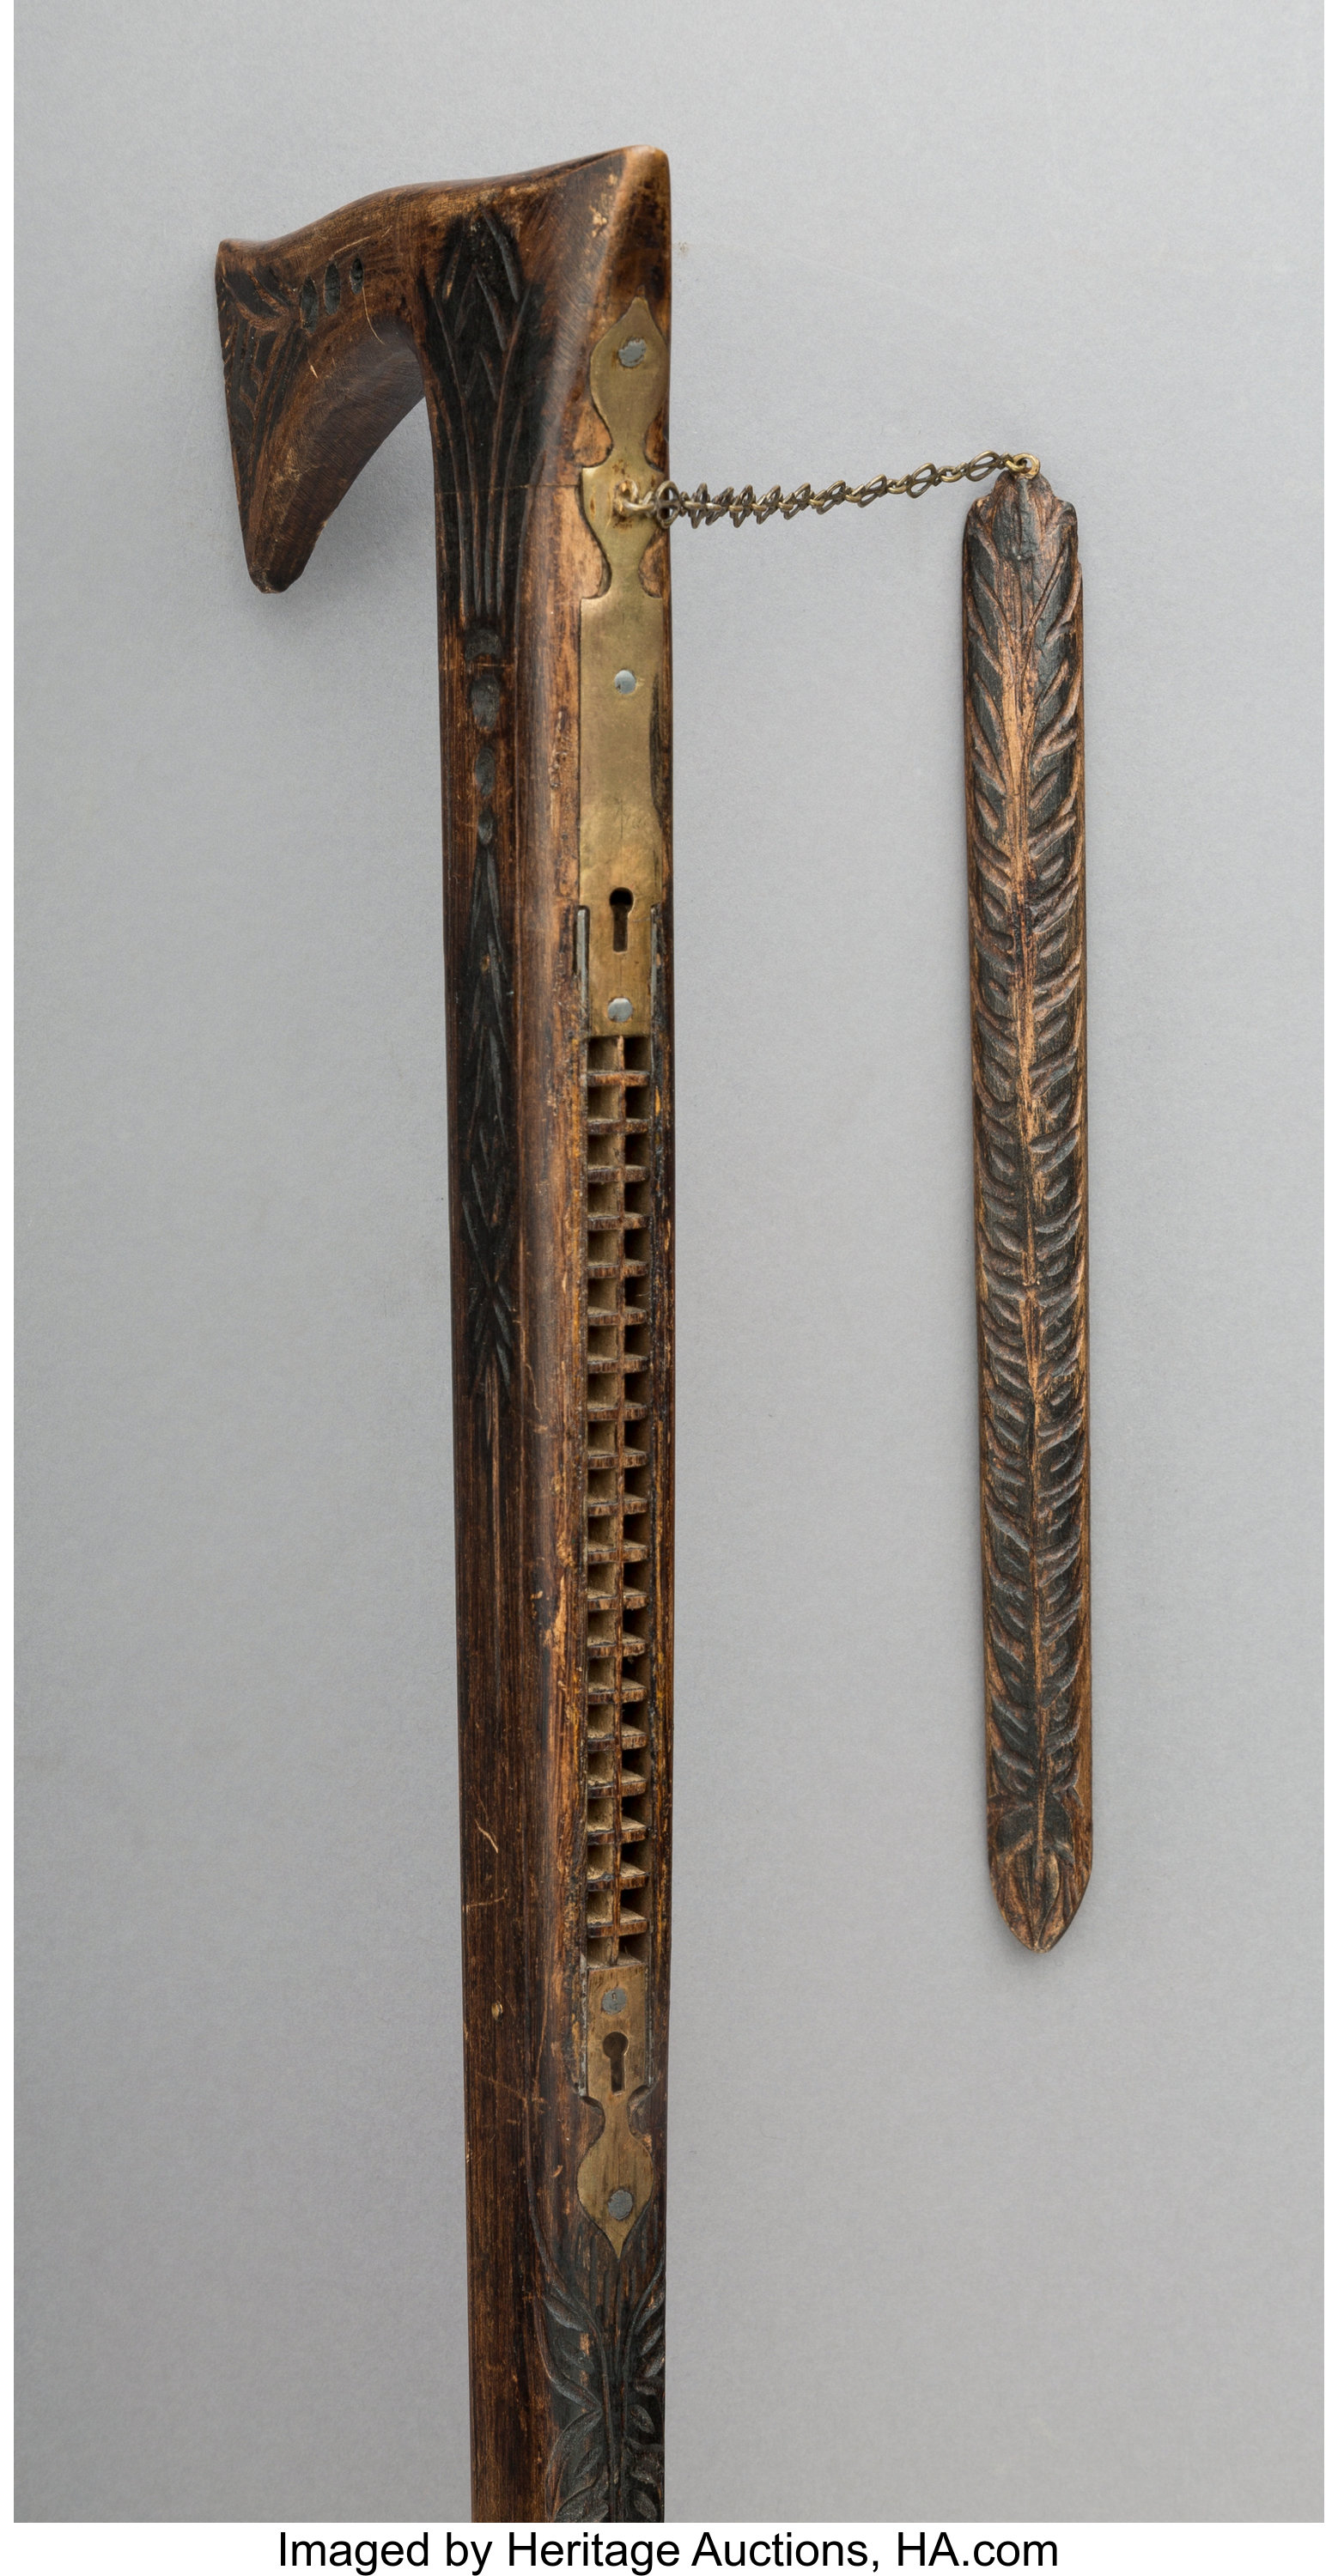 An English Carved Wood Harmonica Walking Stick, late 19th